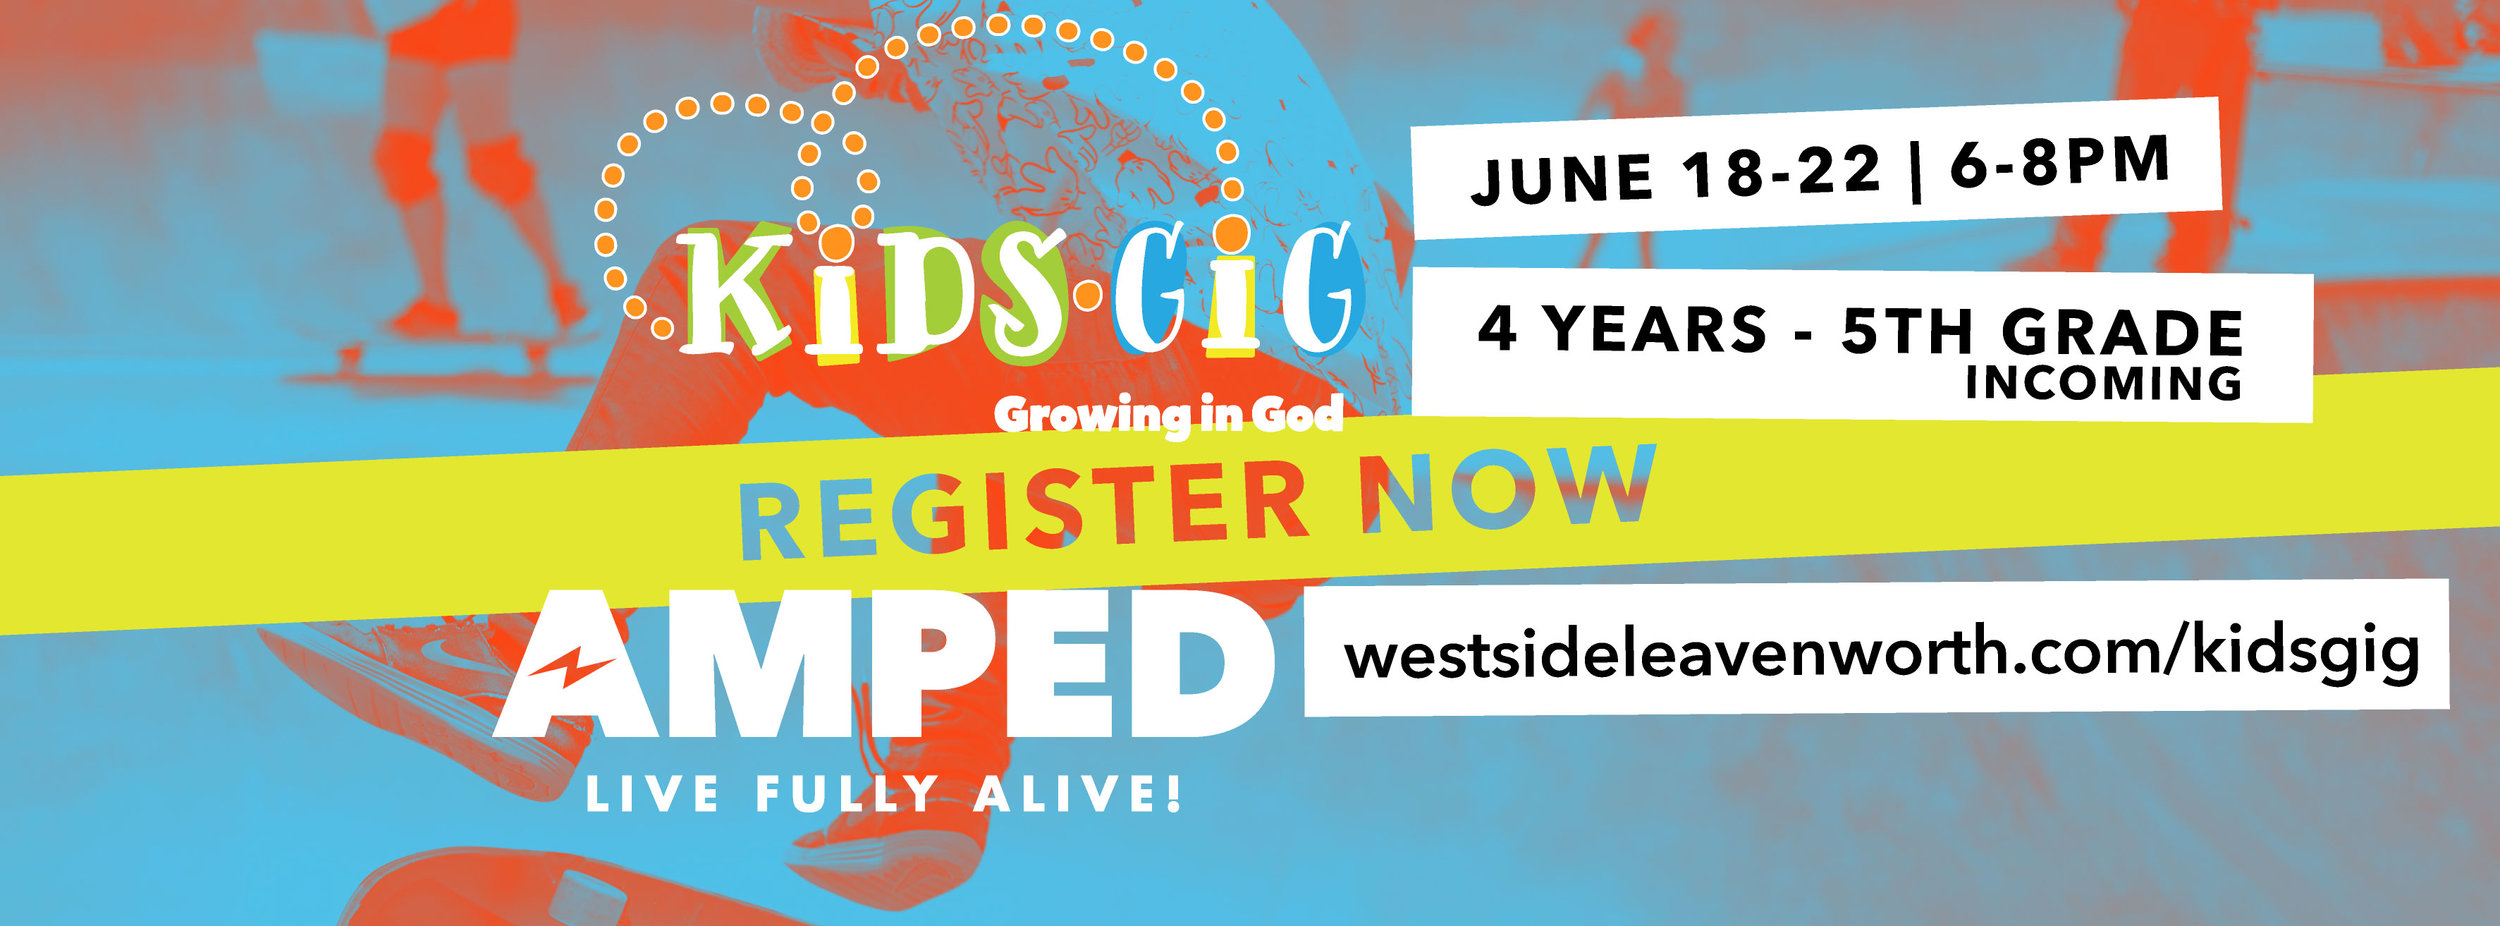 June 18-22 | 6:00 - 8:00 PM   This year's theme is AMPED - Living Fully Alive. Get ready for your KiDS to get supercharged for Christ in the best week EVER! Pre-register NOW for KiDS 4 years through 5th grade.  Please register by April 29 if you want to purchase a KiDSGiG t-shirt for $8.